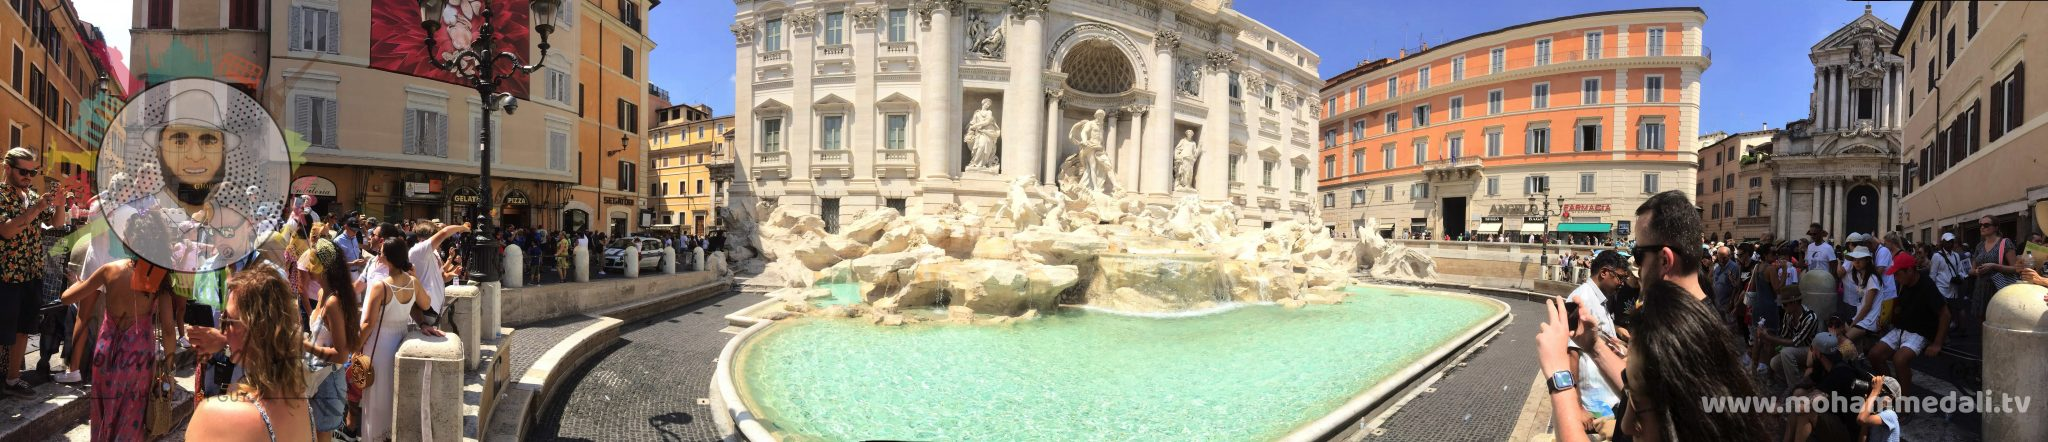 Amazing panoramic view on the Trevi Fountain in Rome, Italy